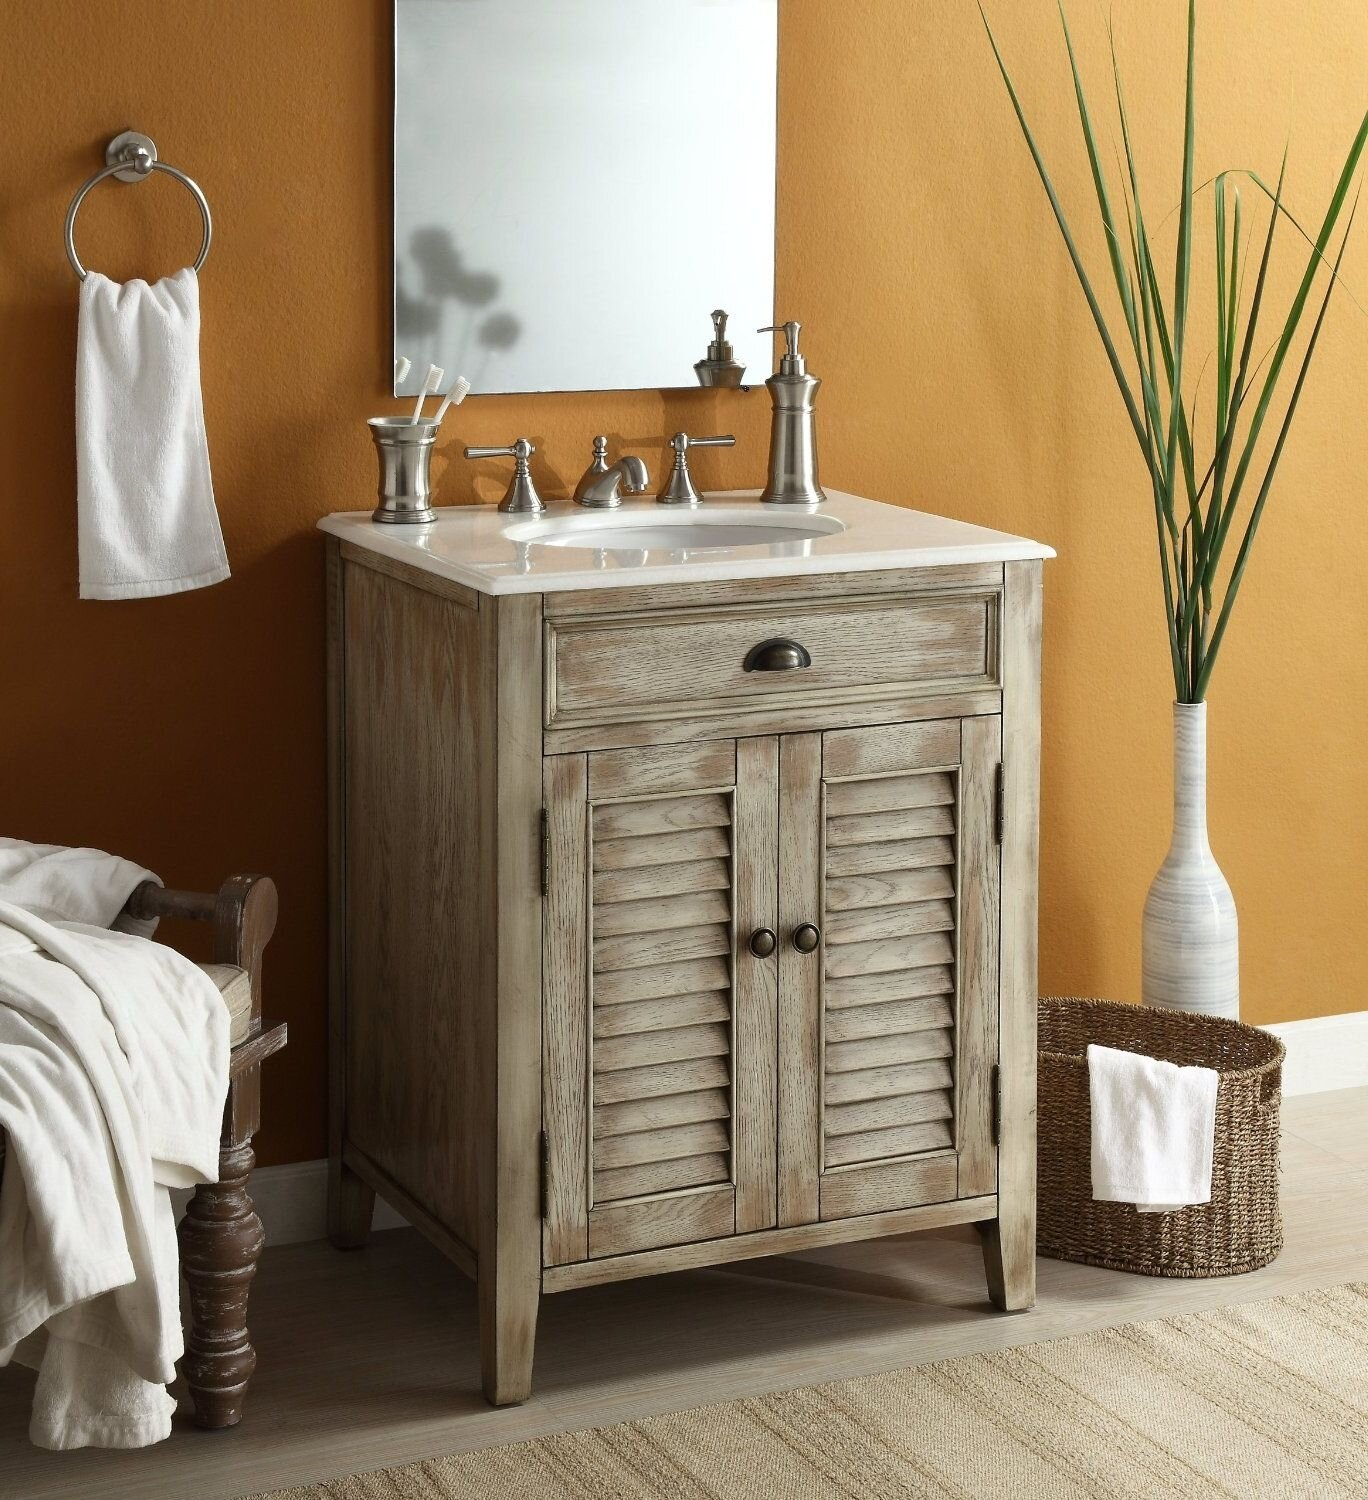 Pottery Barn Vanity for Bathroom Cabinet Design Ideas: Pottery Barn Sinks | Pottery Barn Bath Vanities | Pottery Barn Vanity